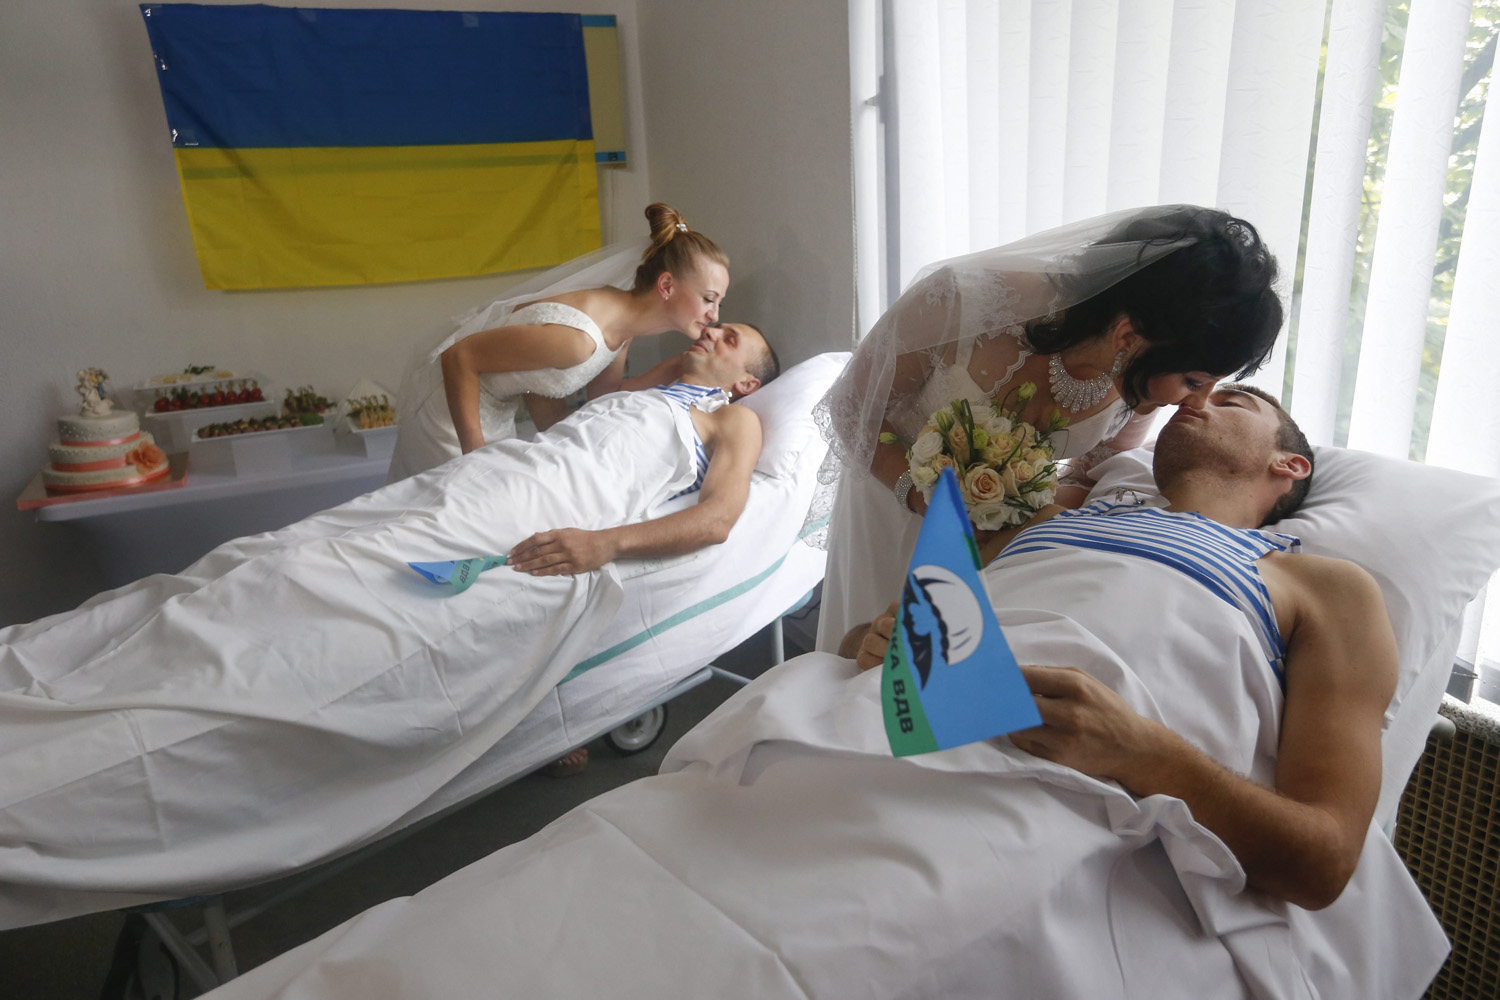 Wounded members of the Ukrainian forces, Ukrainian paratroopers Ruslan Yarish (R) and Oleksandr Ponomaryov (L) kiss their brides during their wedding in the central military hospital in Kiev, Ukraine on July 9, 2014.